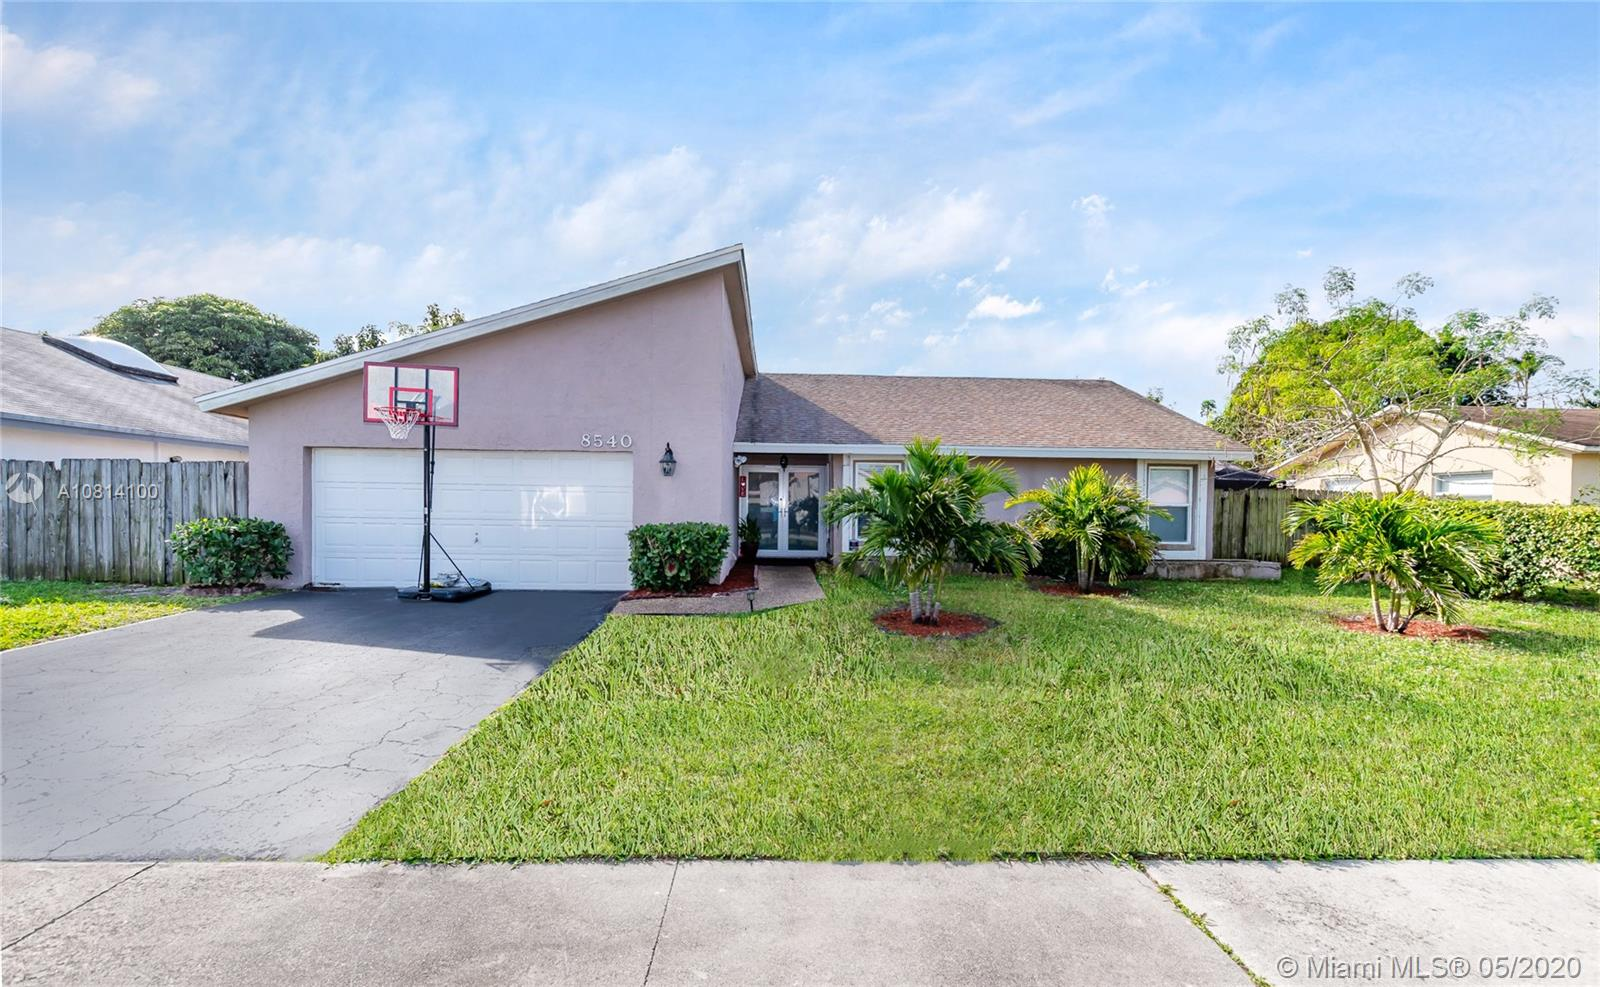 Beautiful 4 bedroom home in excellent neighborhood. Minutes away from excellent schools. Recently remodeled throughout. Large pool, Stainless steel appliances, wood floors, hurricane windows and doors. Garage has been converted into large 4th bedroom. Very easy to show!